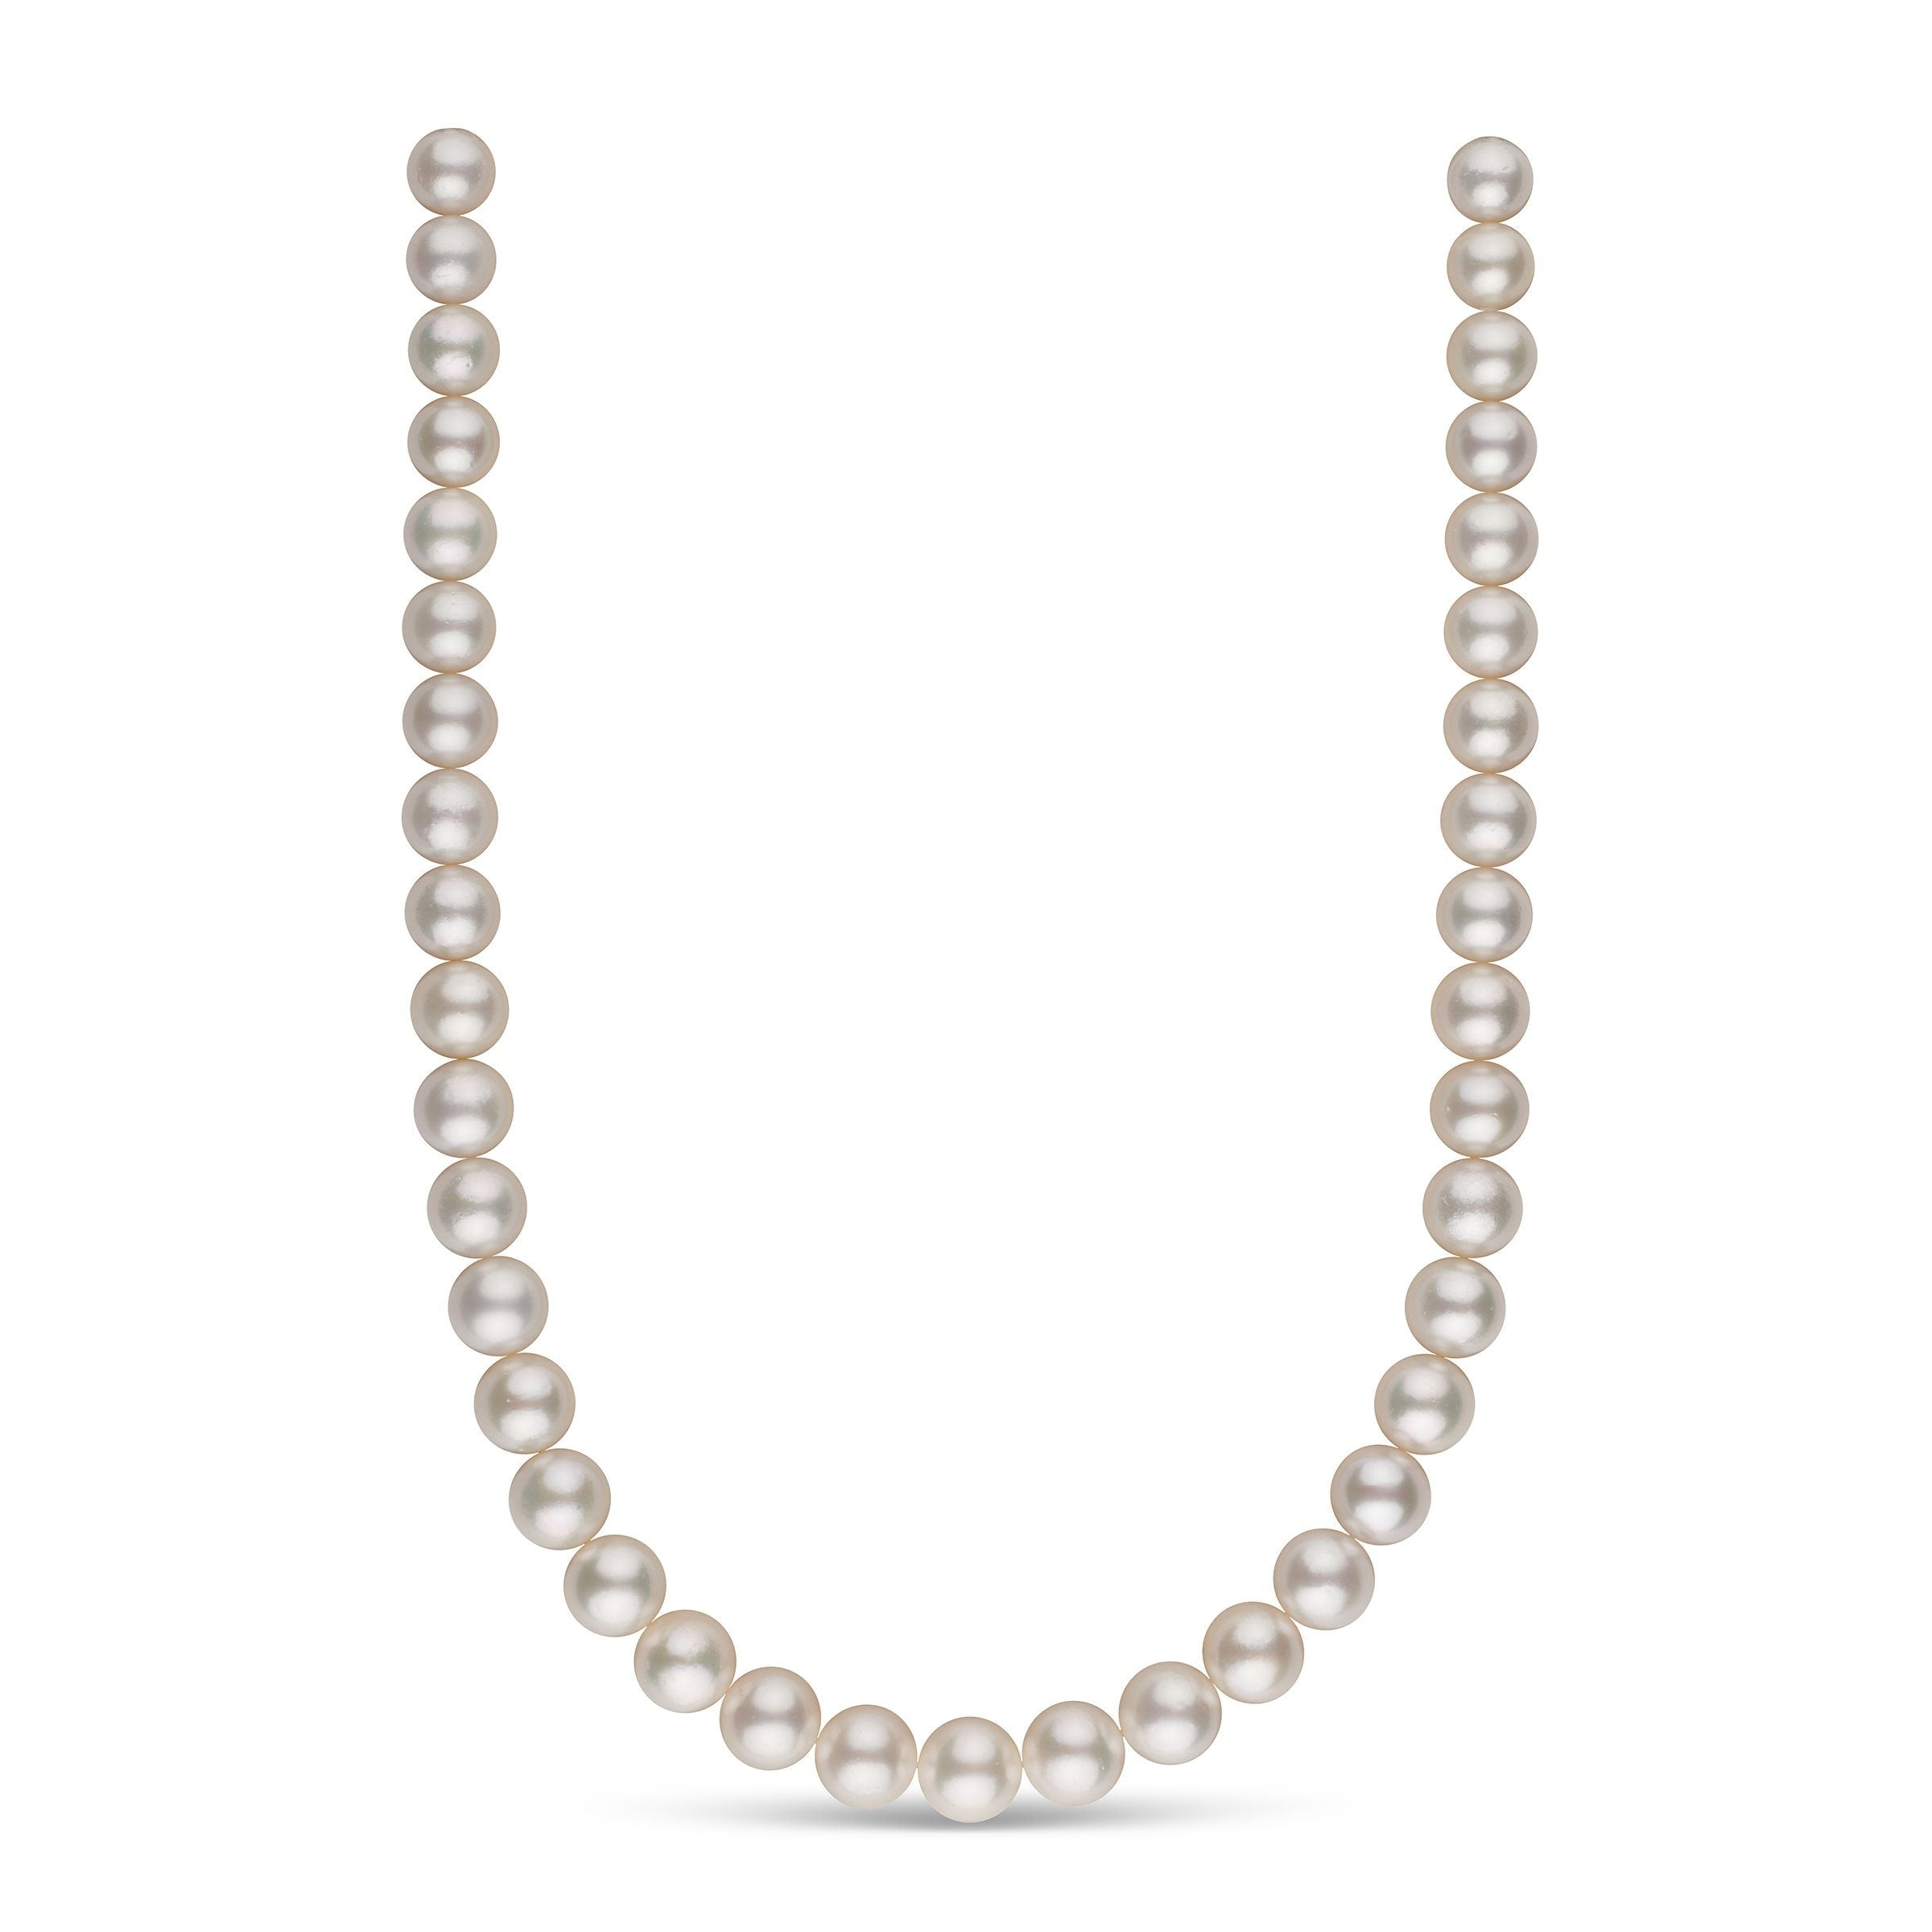 The Ballad White South Sea Pearl Necklace